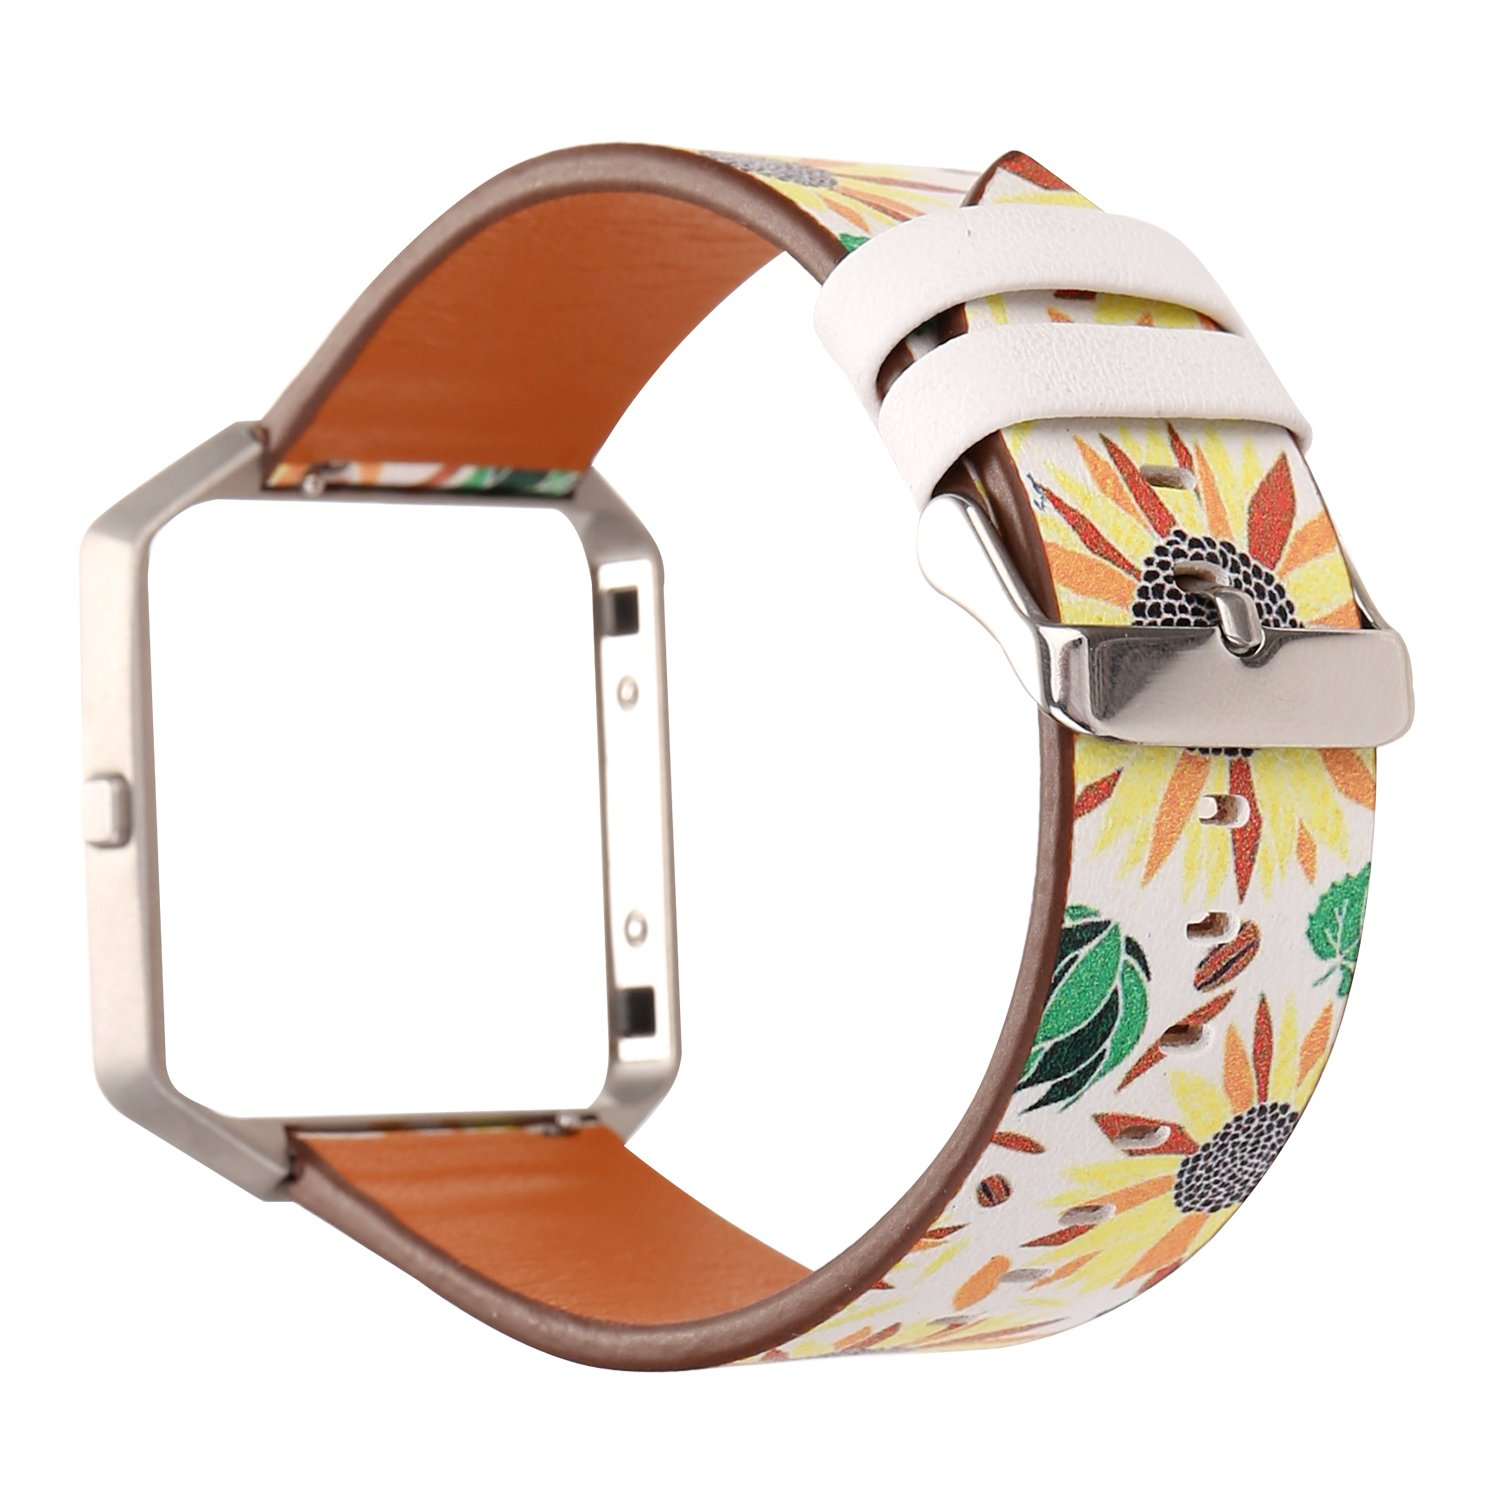 MeShow TCSHOW Soft PU Leather Pastoral/Rural Floral Style Replacement Strap Wrist Band Silver Metal Adapter Compatible Fitbit Blaze (R)